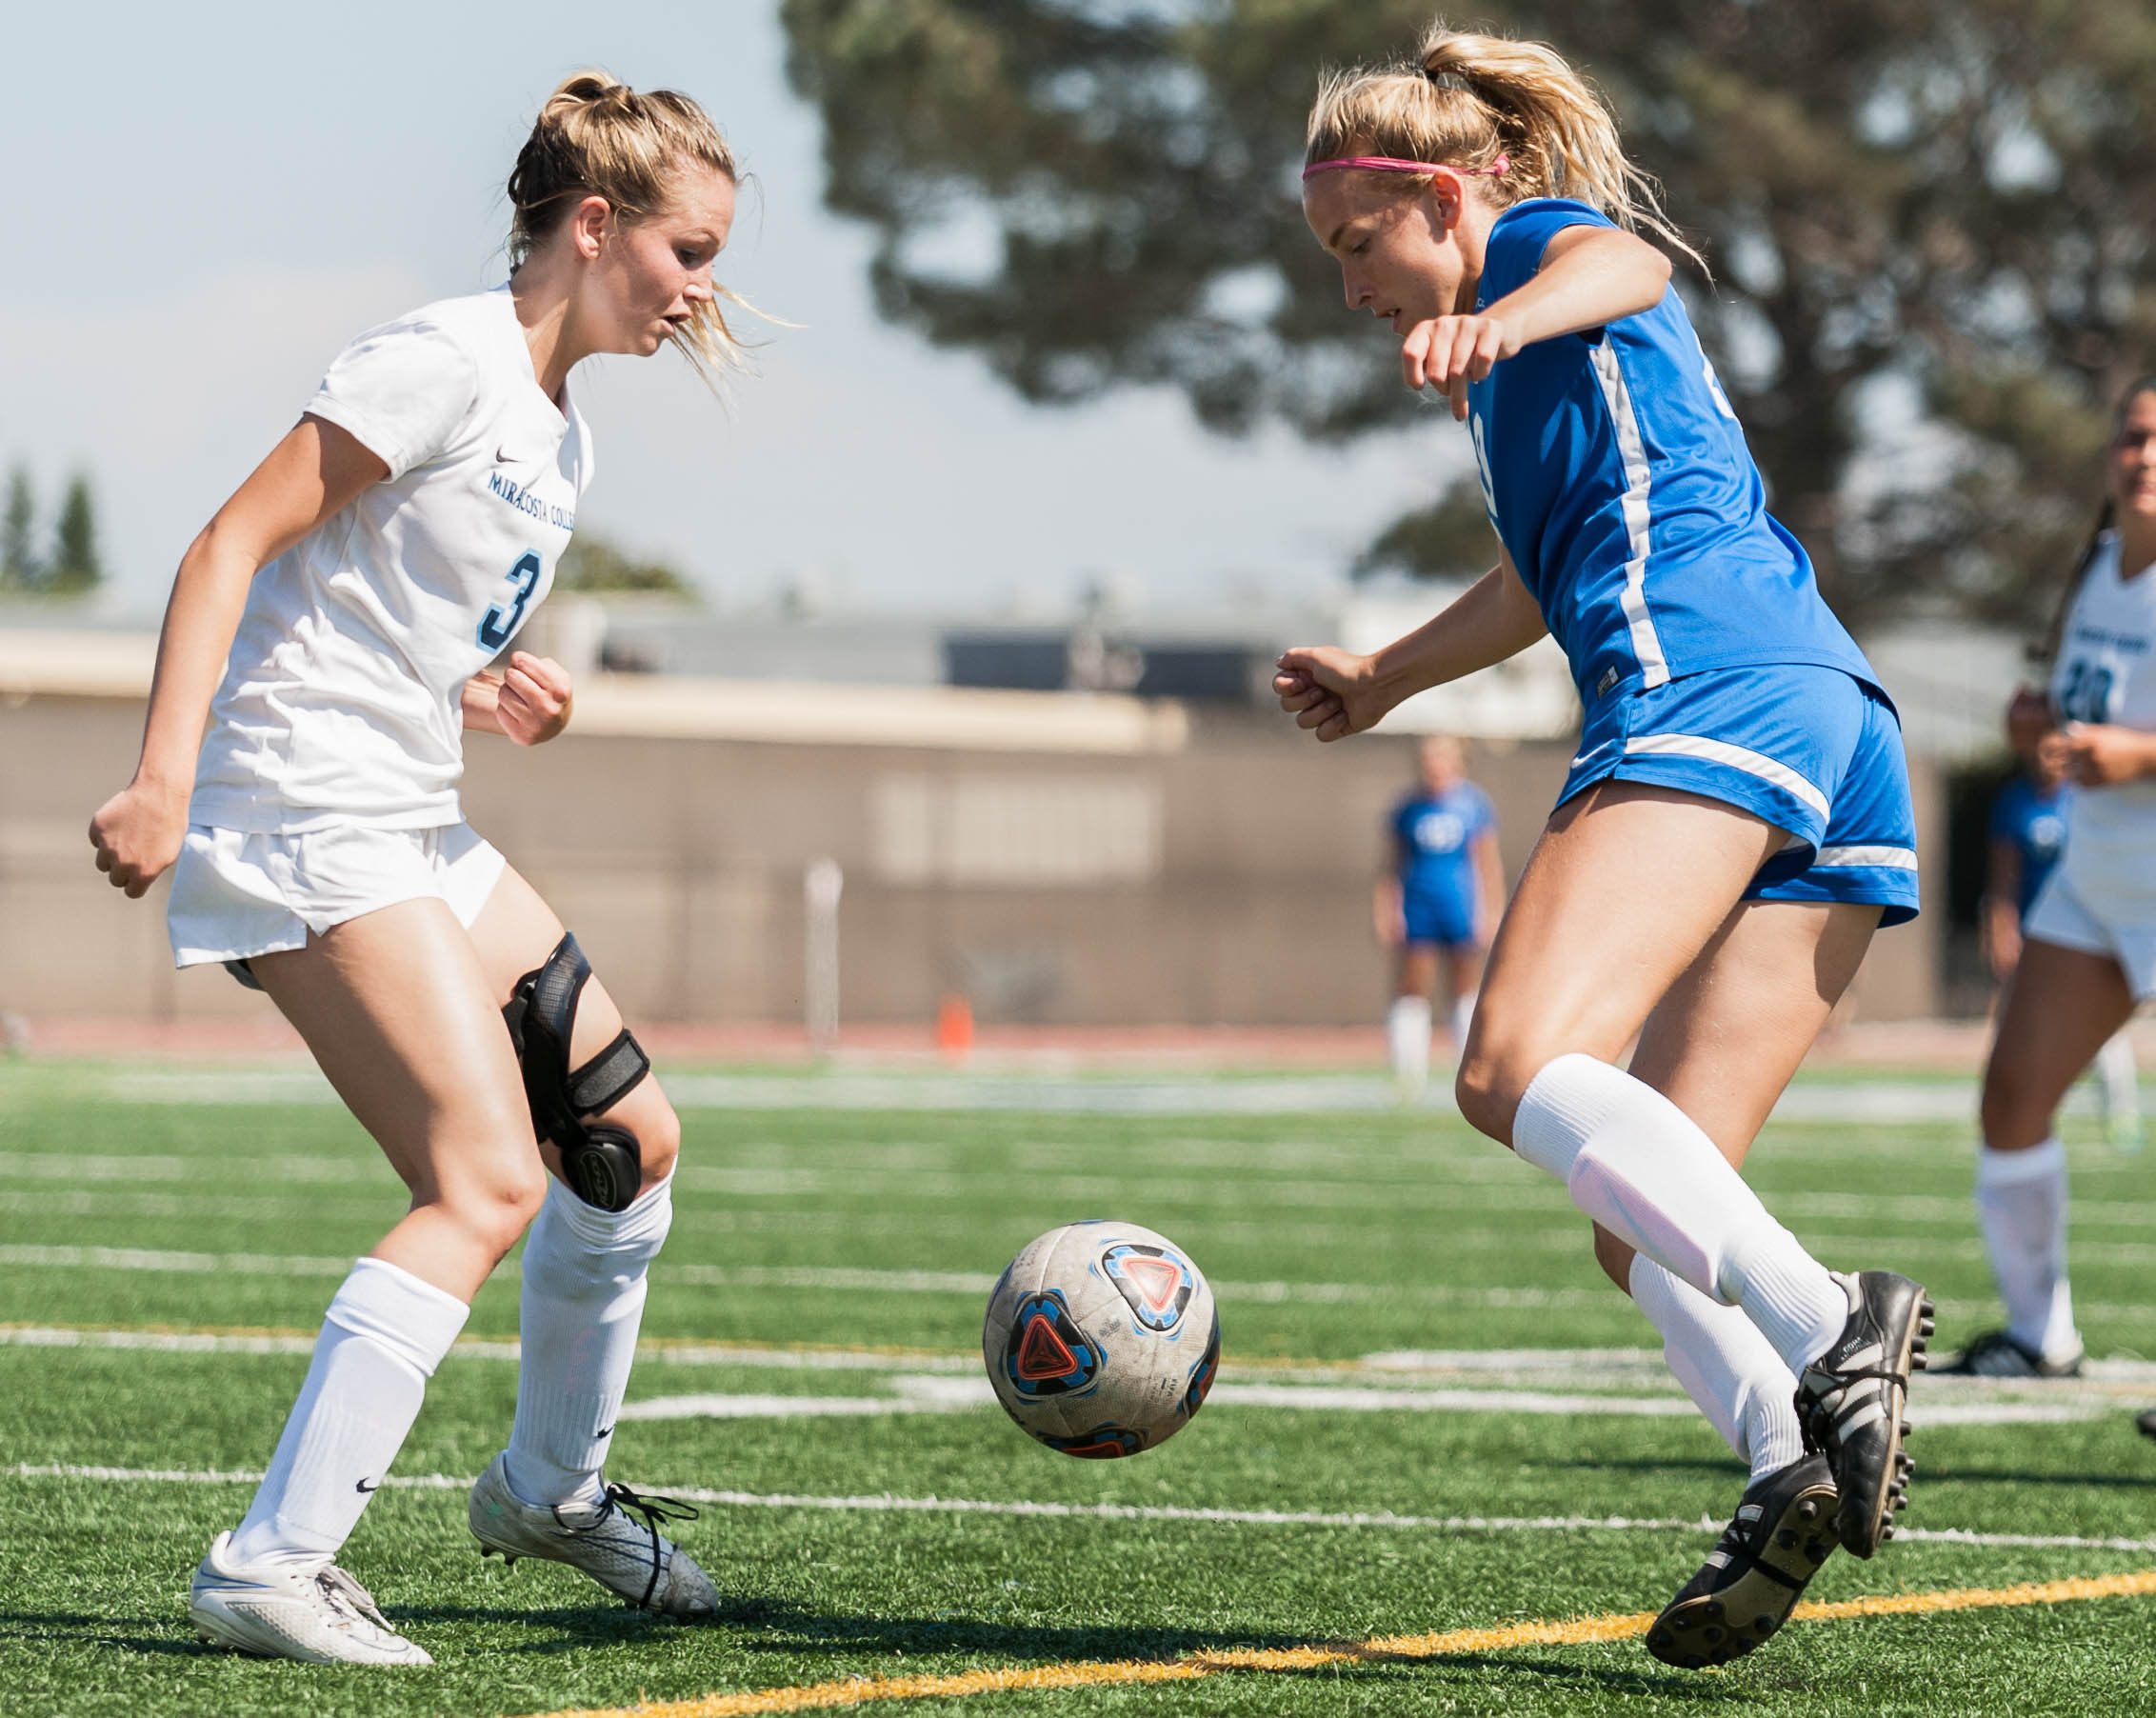 Nicole Andersson of the Santa Monica College Women's Soccer Teams attempts to get by Shayla Cottrell (3) of MiraCosta College. The Corsairs Women's Team won the game 1-0 against the MiraCosta Spartans. The match was held at the Corsair Field at Santa Monica College in Santa Monica, Calif.. September 6, 2017. (Photo by: Justin Han/Corsair Staff)